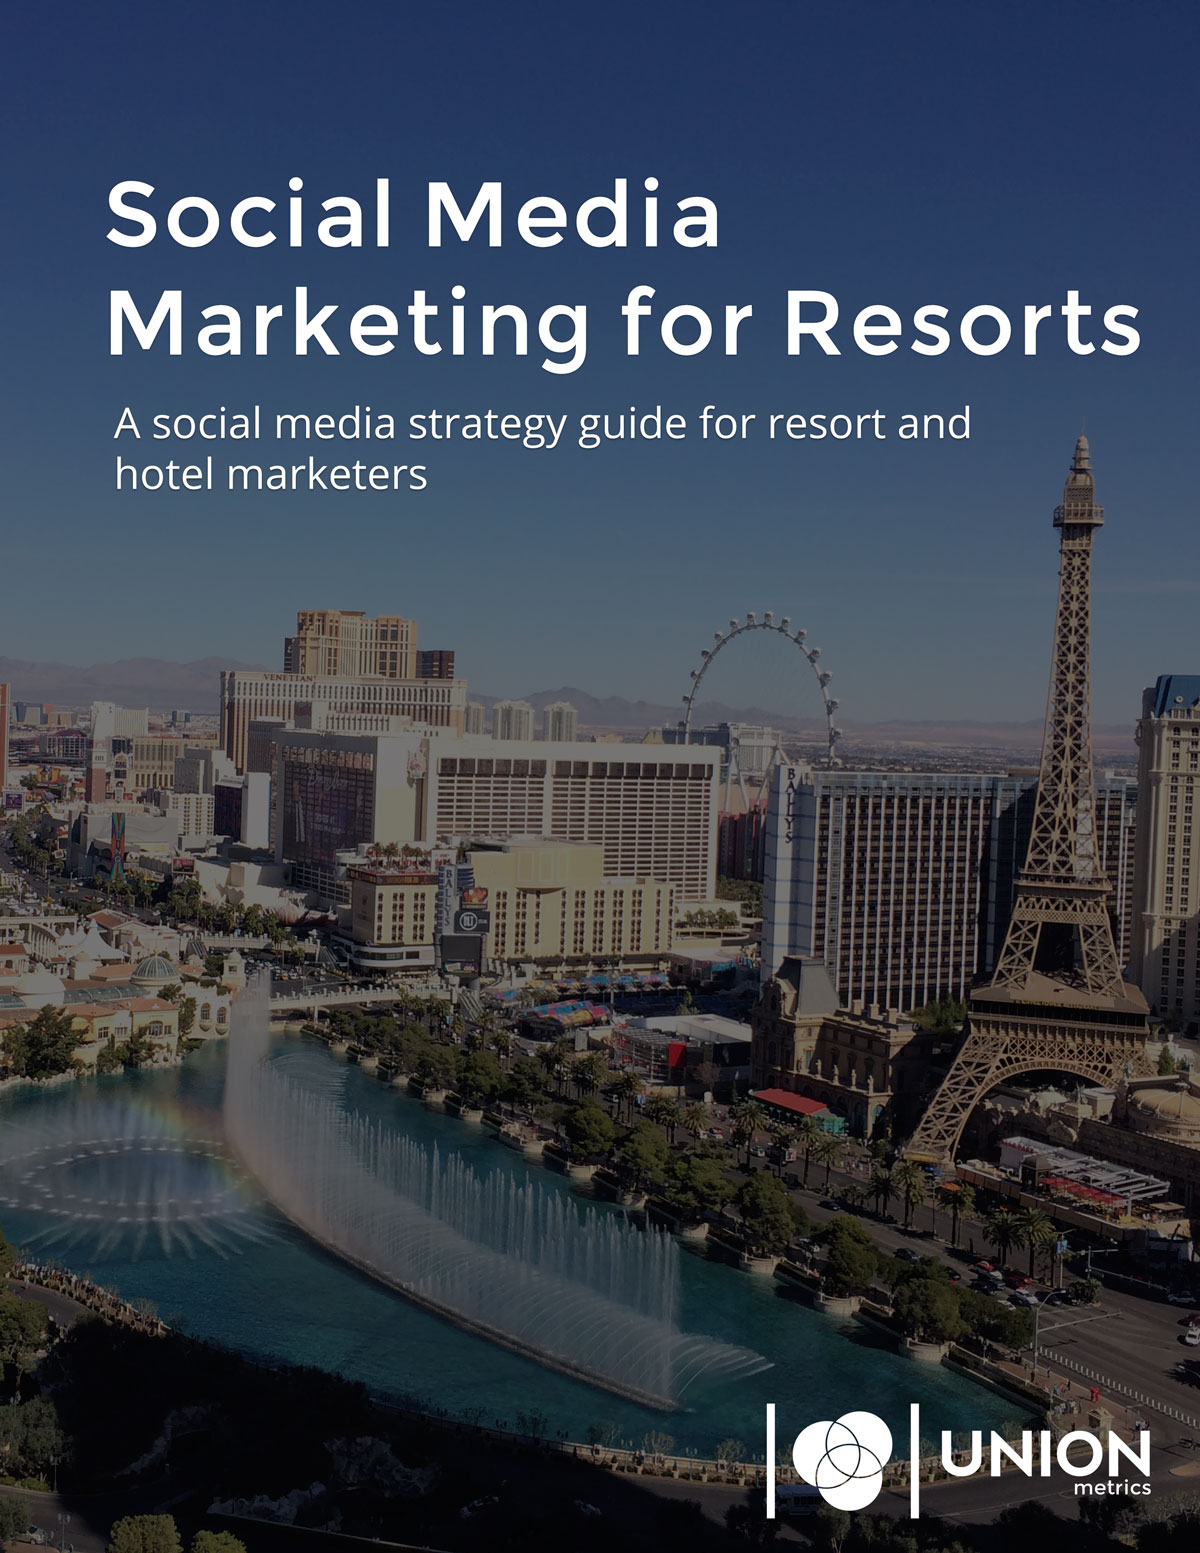 Social media strategy for resort marketers